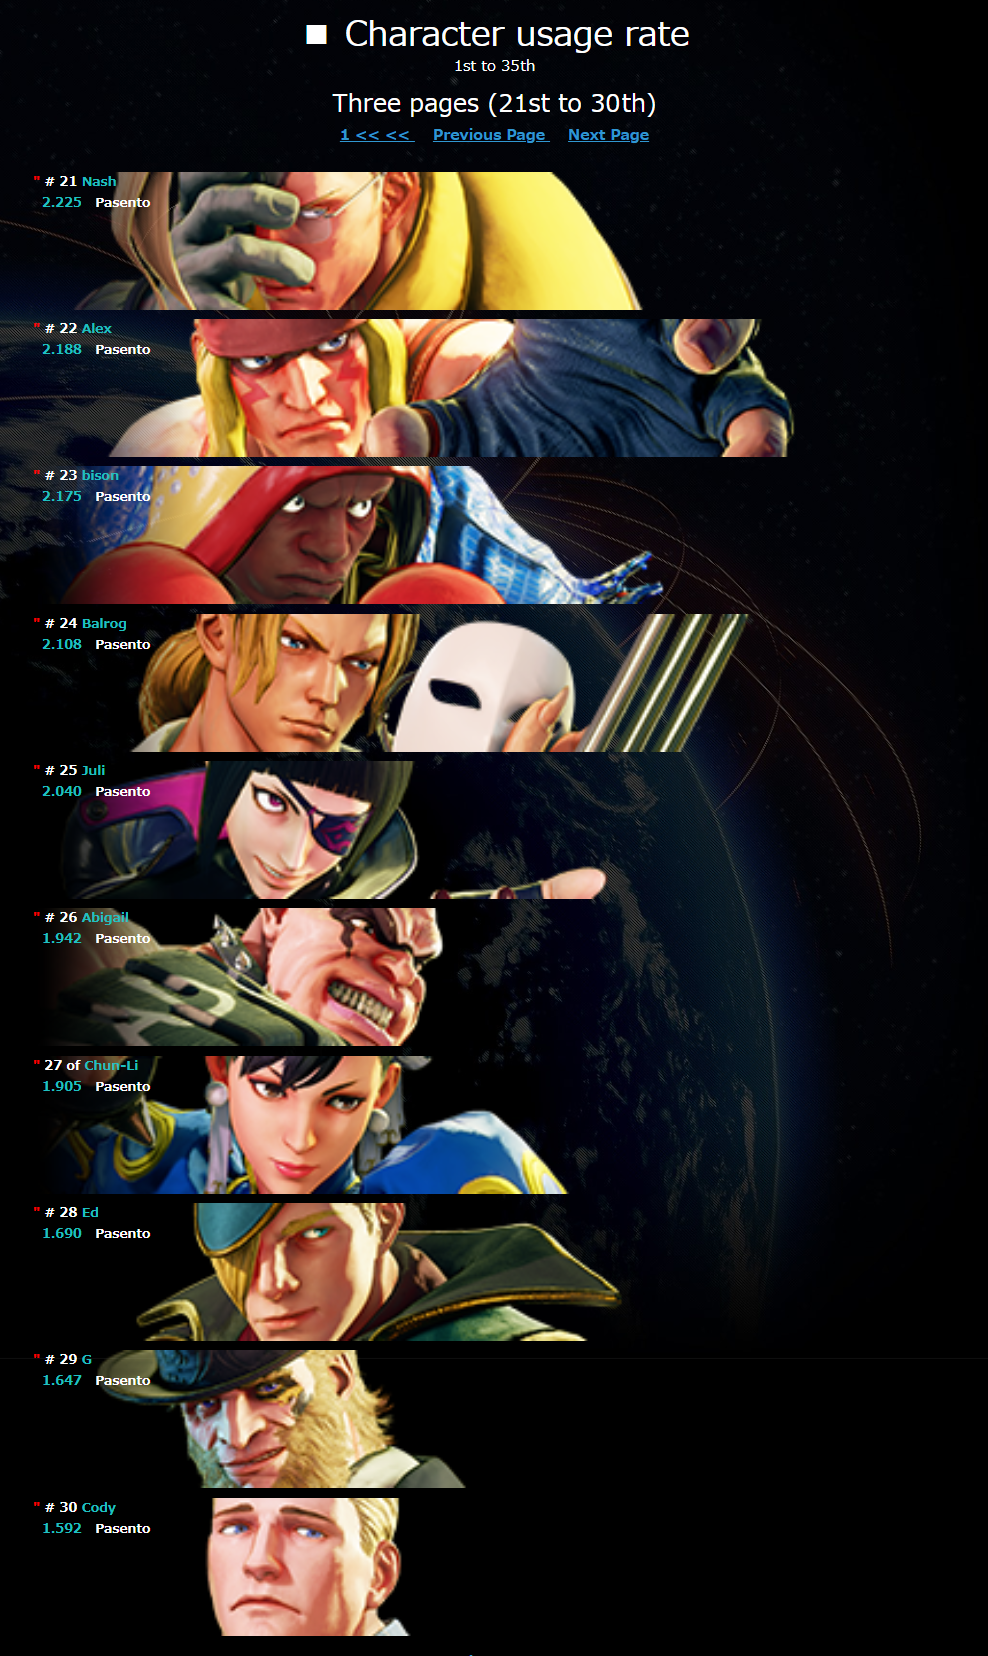 Street Fighter 5: Type Arcade Day 1 statistics 3 out of 5 image gallery